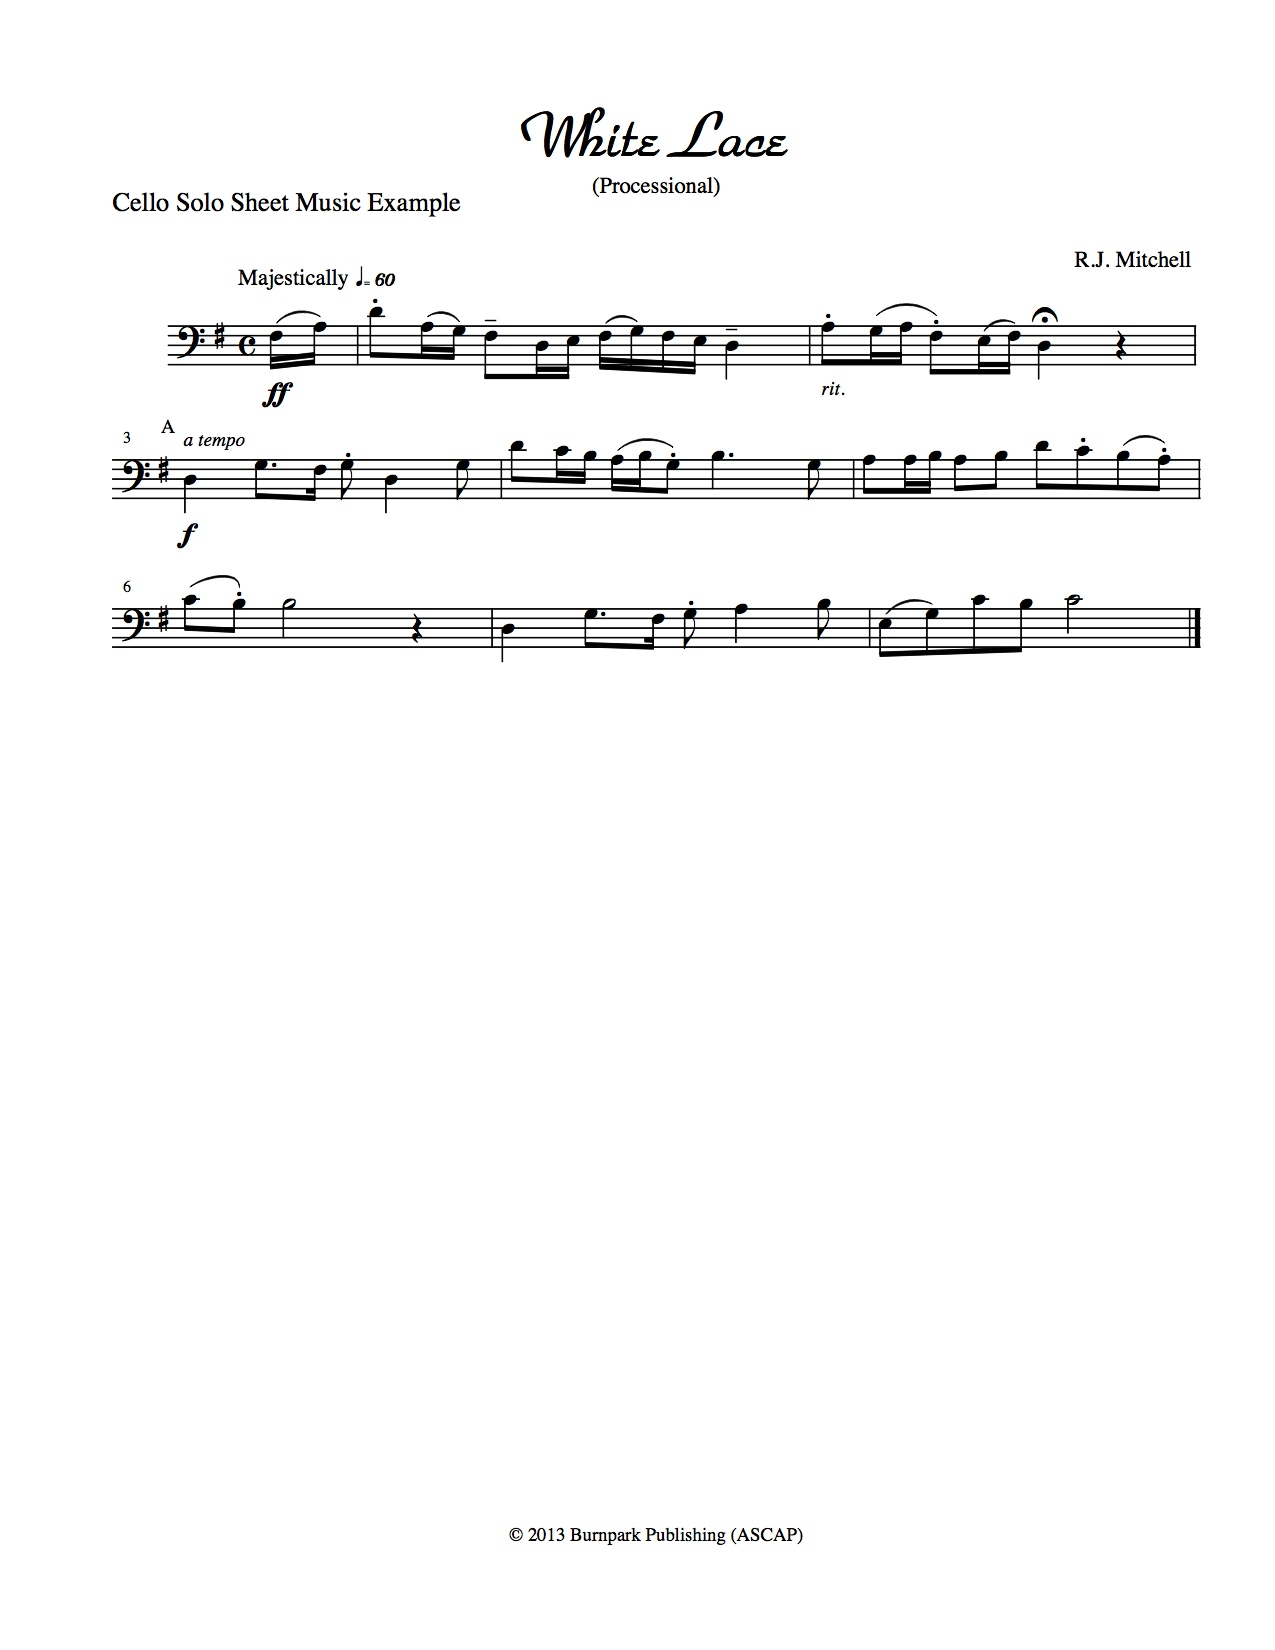 White Lace - Cello Solo Sheet Music Example.jpg